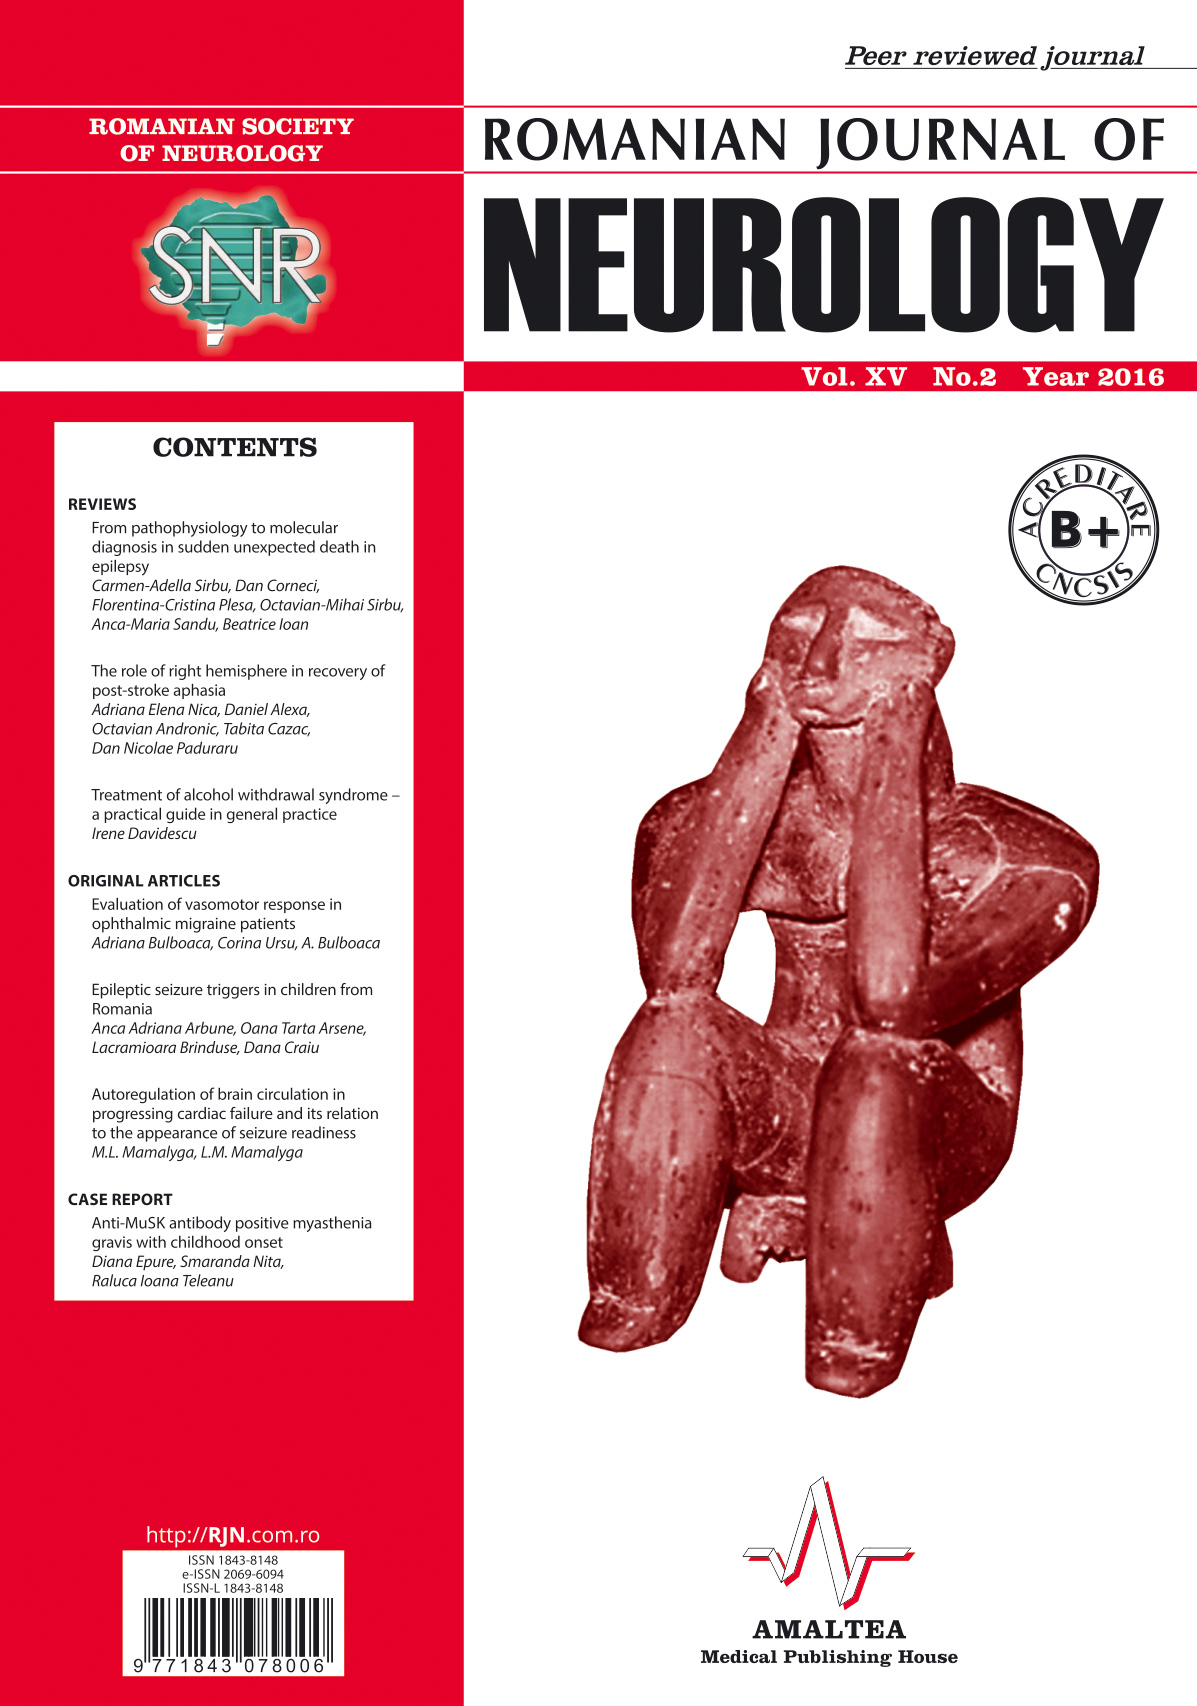 Romanian Journal of Neurology, Volume XV, No. 2, 2016